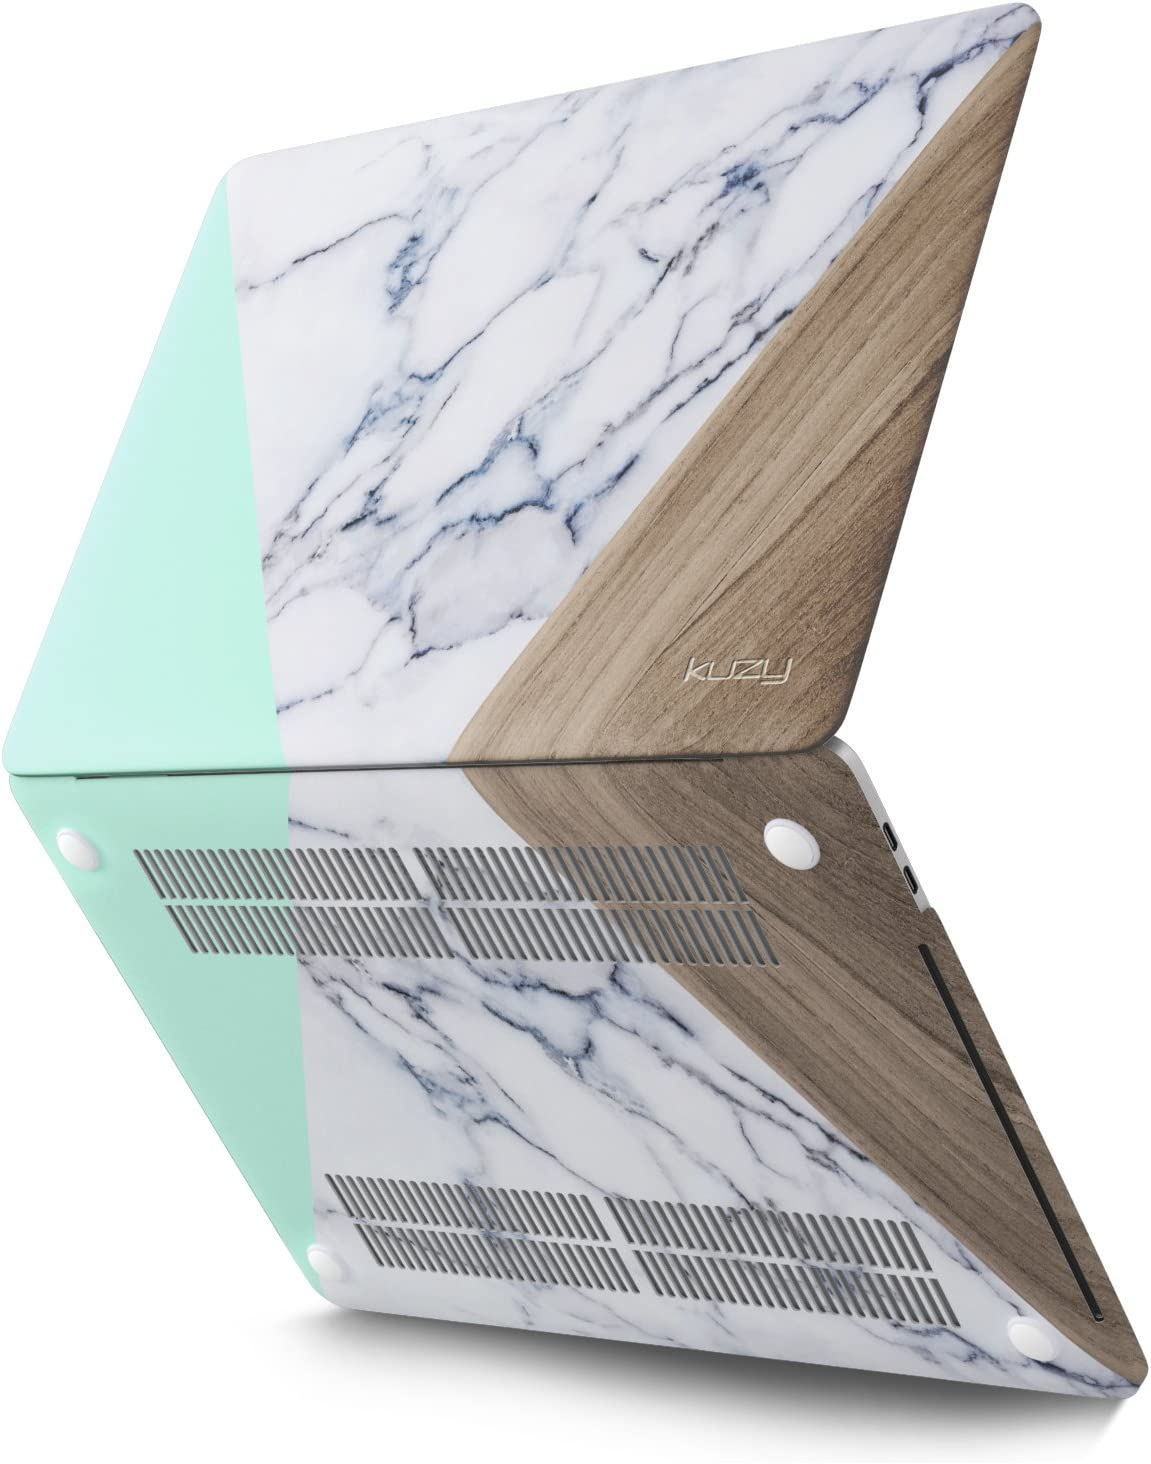 Kuzy - MacBook Pro 15 inch Case 2019 2018 2017 2016 Release A1990 A1707, Hard Plastic Shell Cover for Newest MacBook Pro 15 case with Touch Bar Soft Touch - Marble Mint Wood Pattern